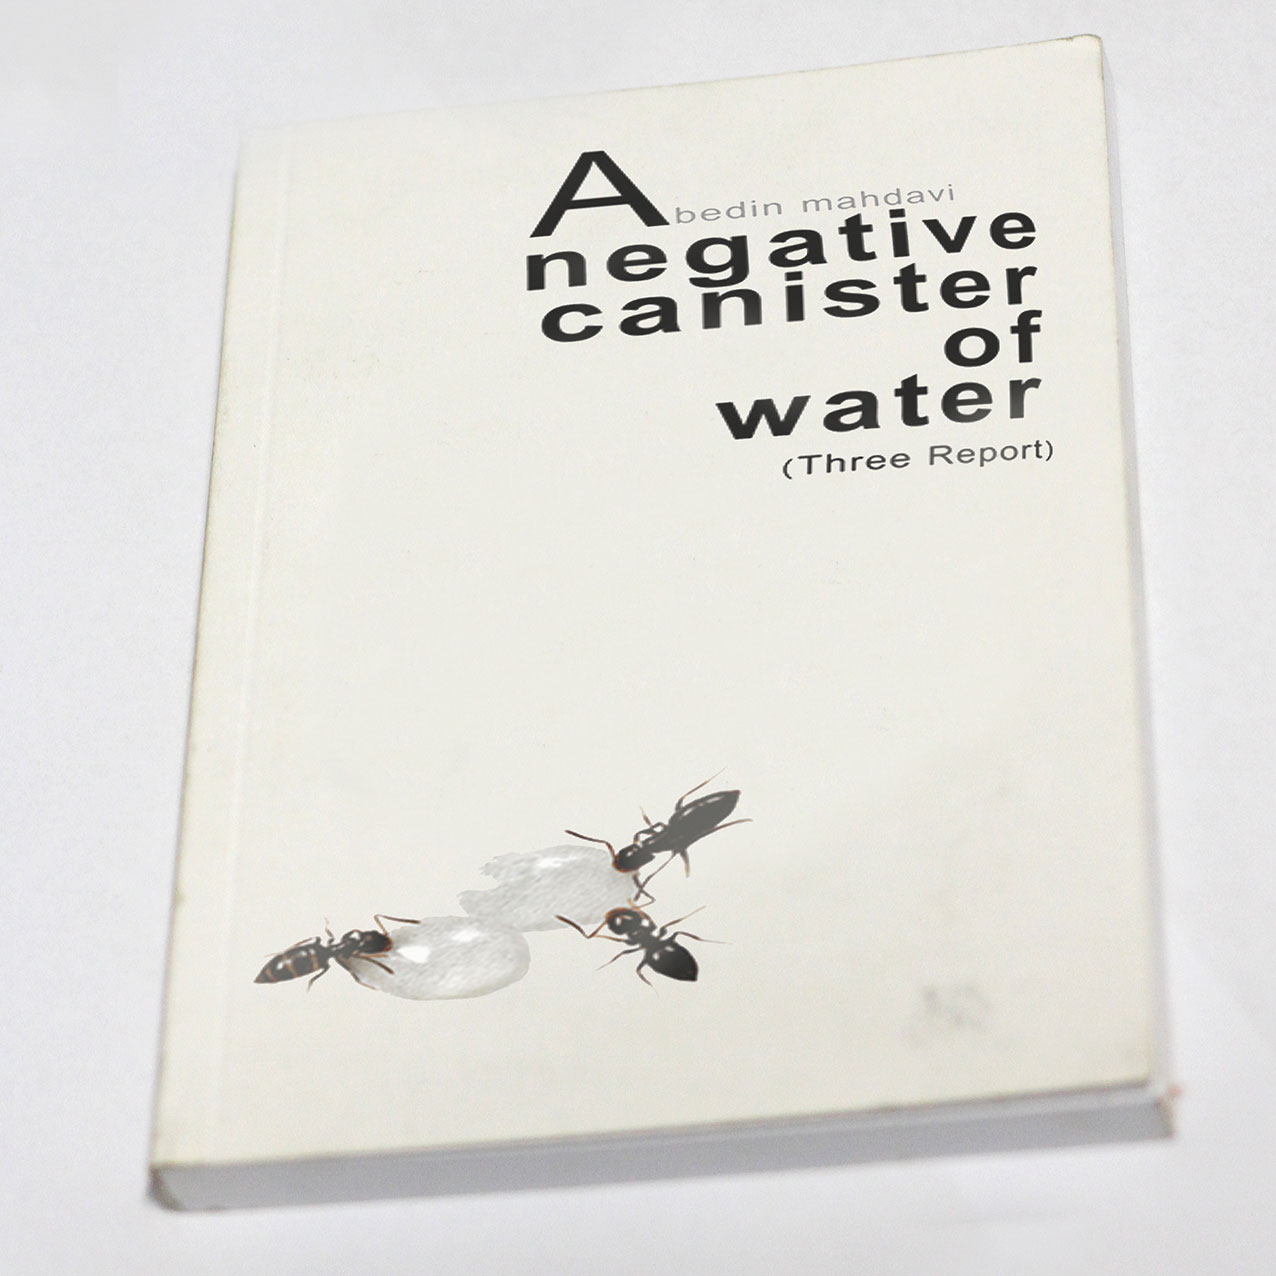 A Negative Canister of Water-AbedinMahdvi